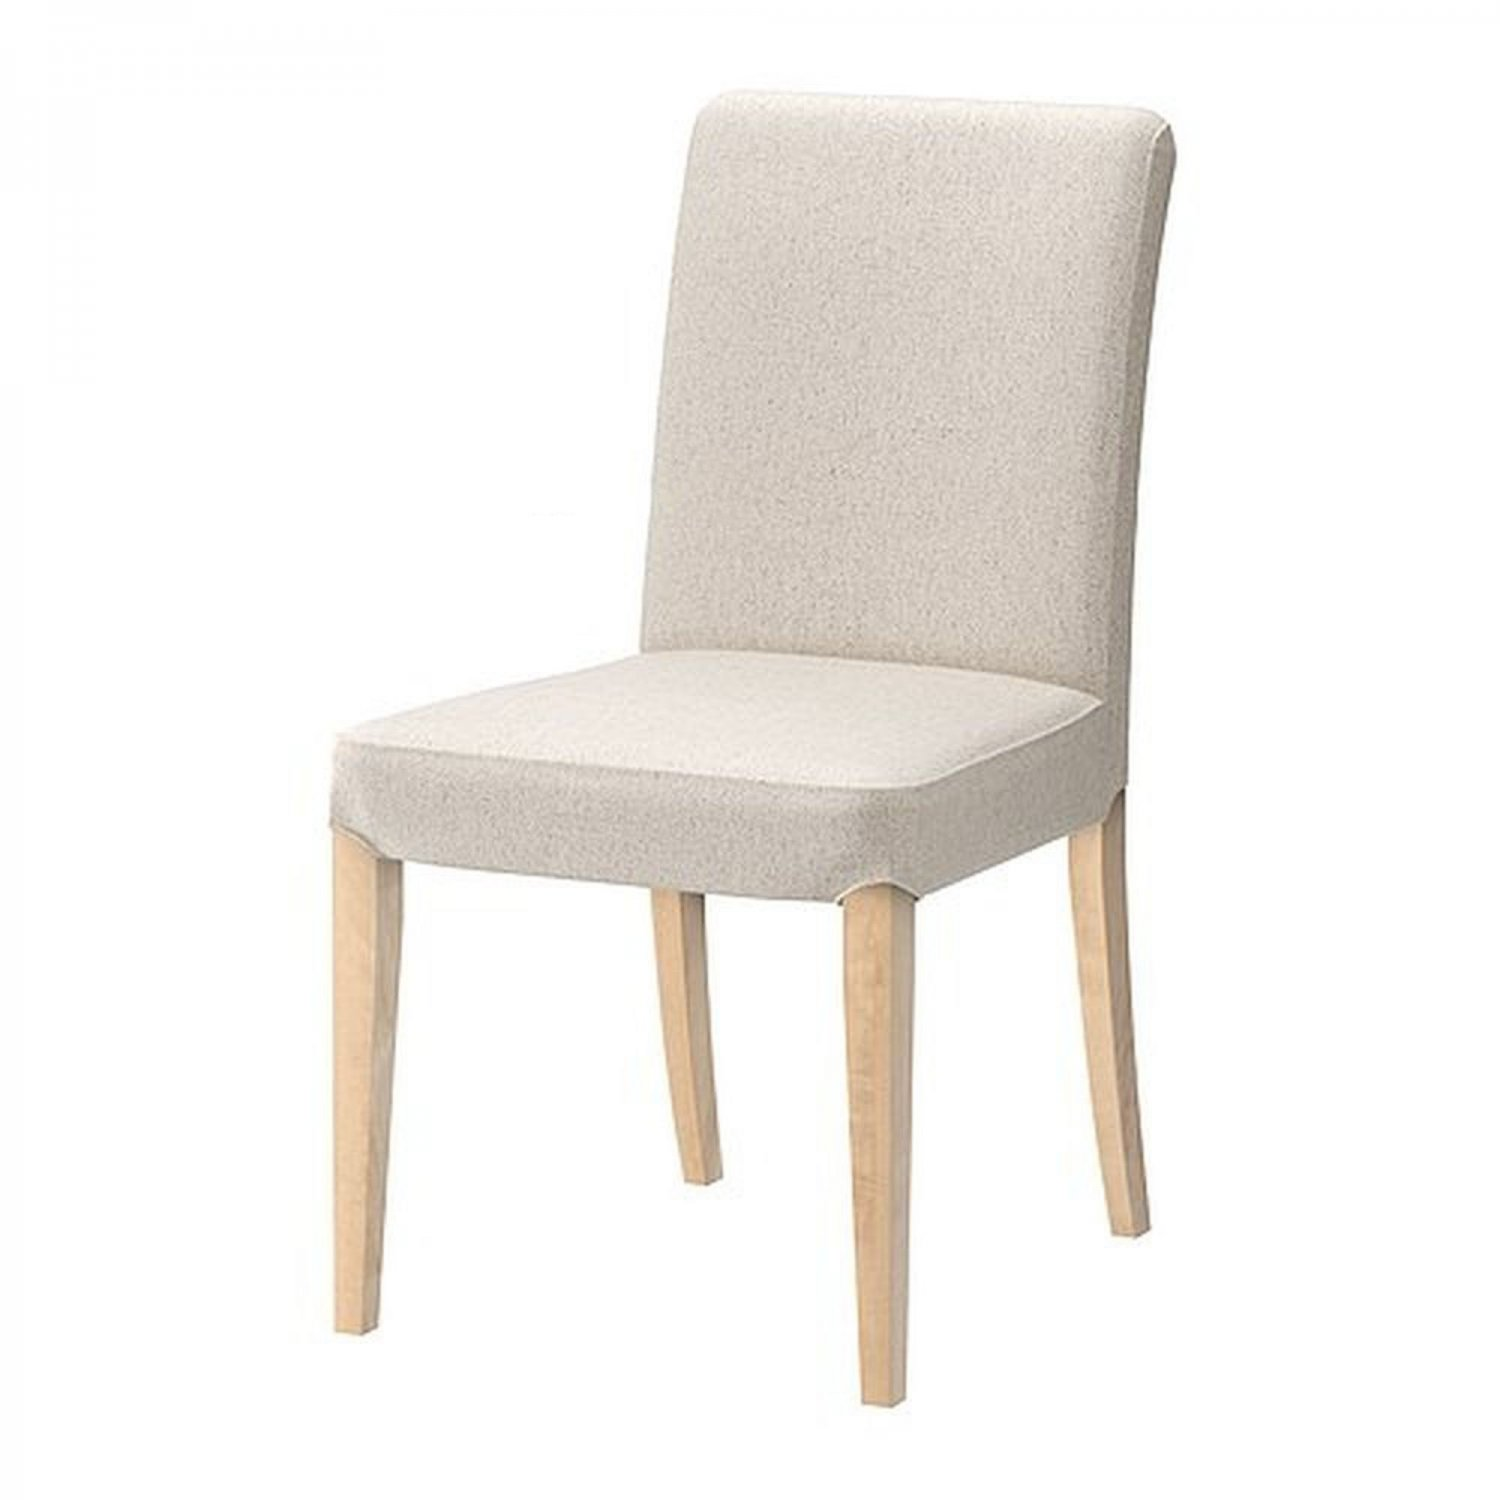 "Dining Chair Ikea: IKEA HENRIKSDAL Chair SLIPCOVER Cover 21"" 54cm LINNERYD"